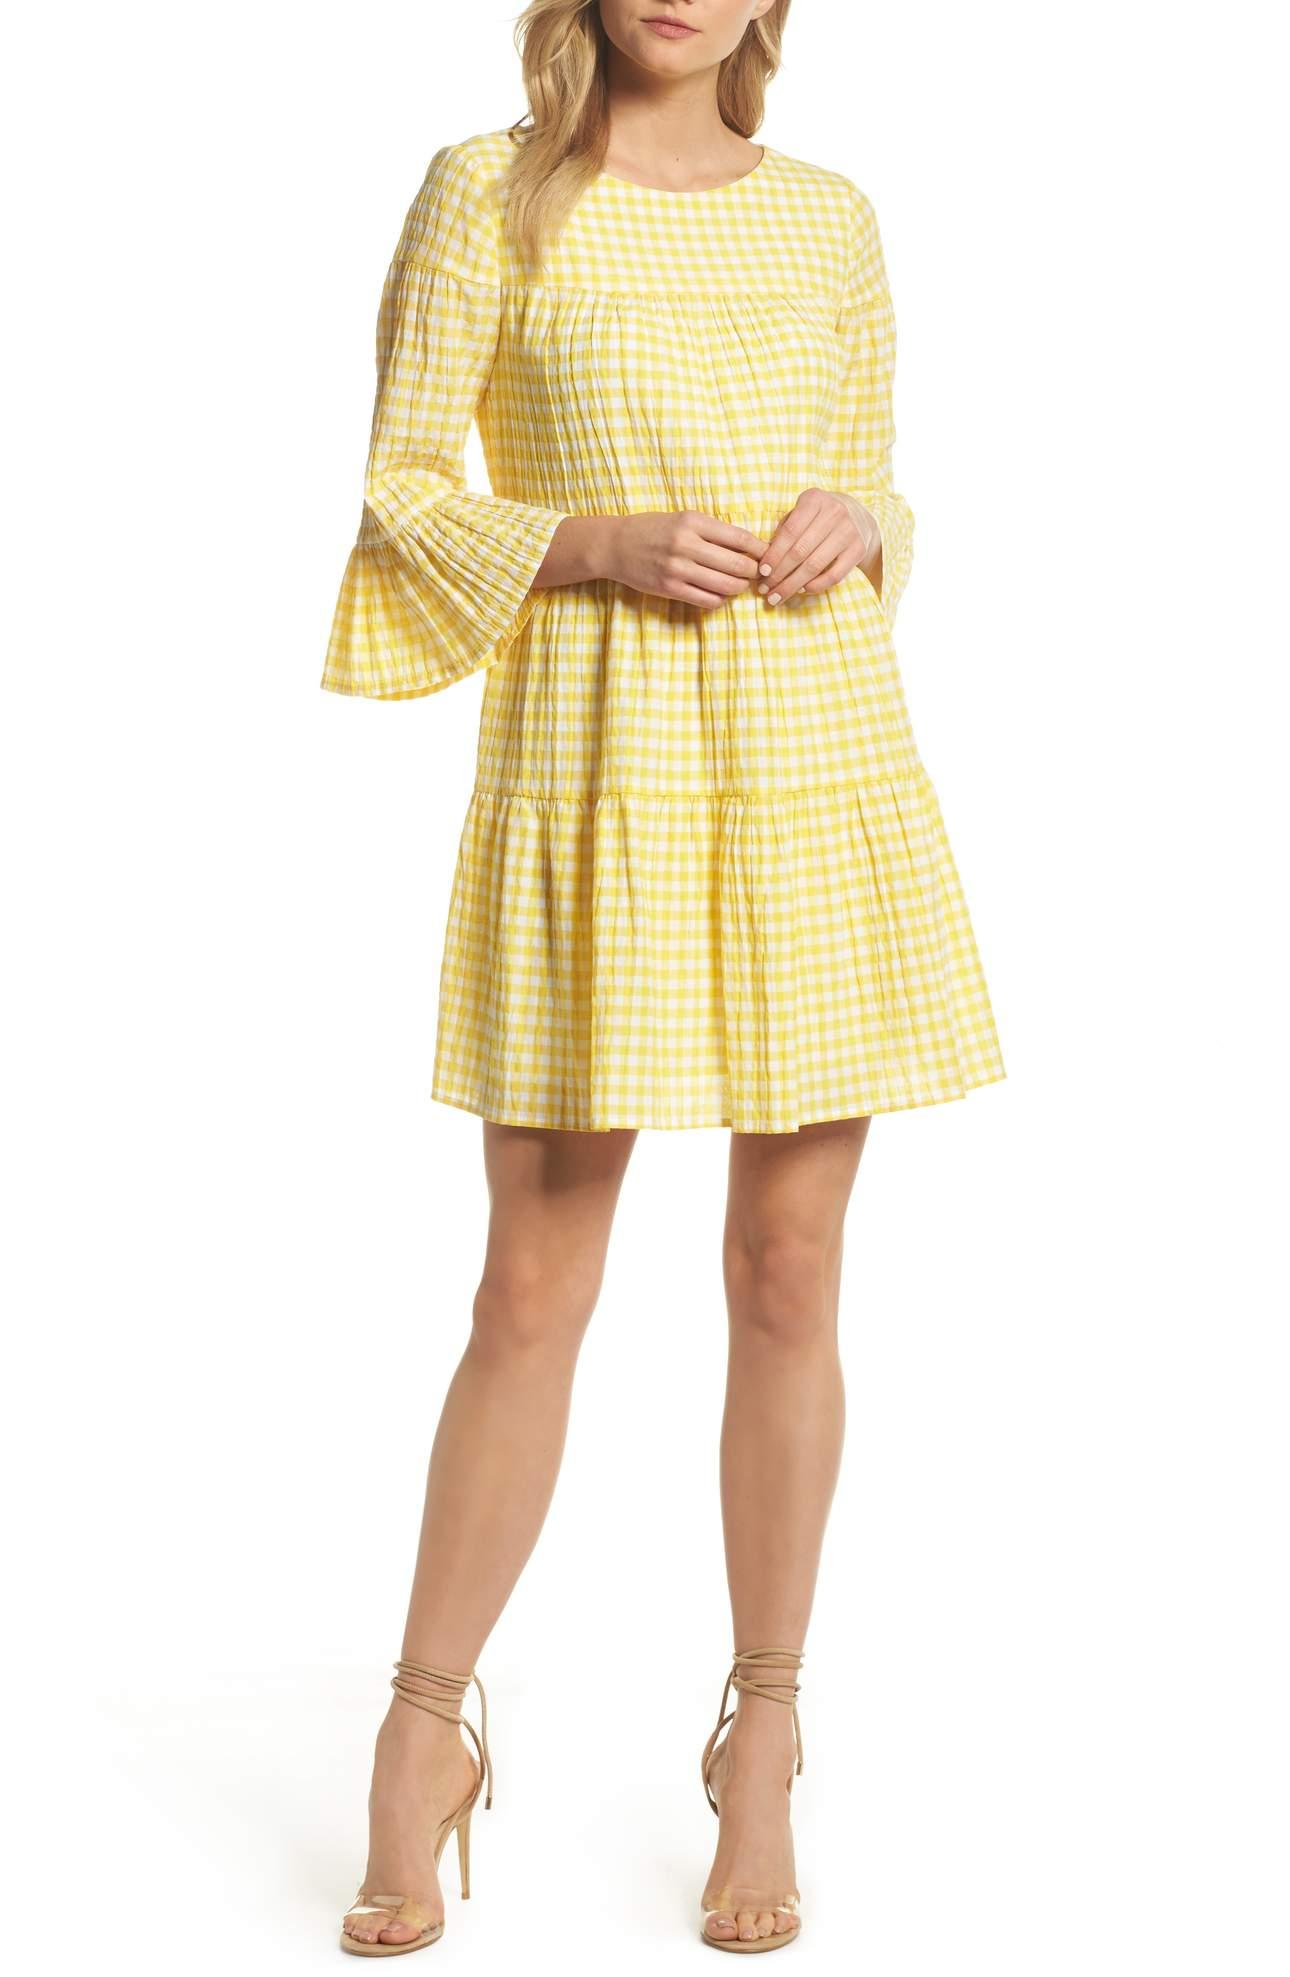 <p>Be a ray of sunshine wherever you go in this gingham swing dress that's ready for picnics, park strolls and garden parties.{&amp;nbsp;}Gingham Swing Dress/MAGGY LONDON. $128.00 at Nordstrom. (Image: Nordstrom)</p><p></p>